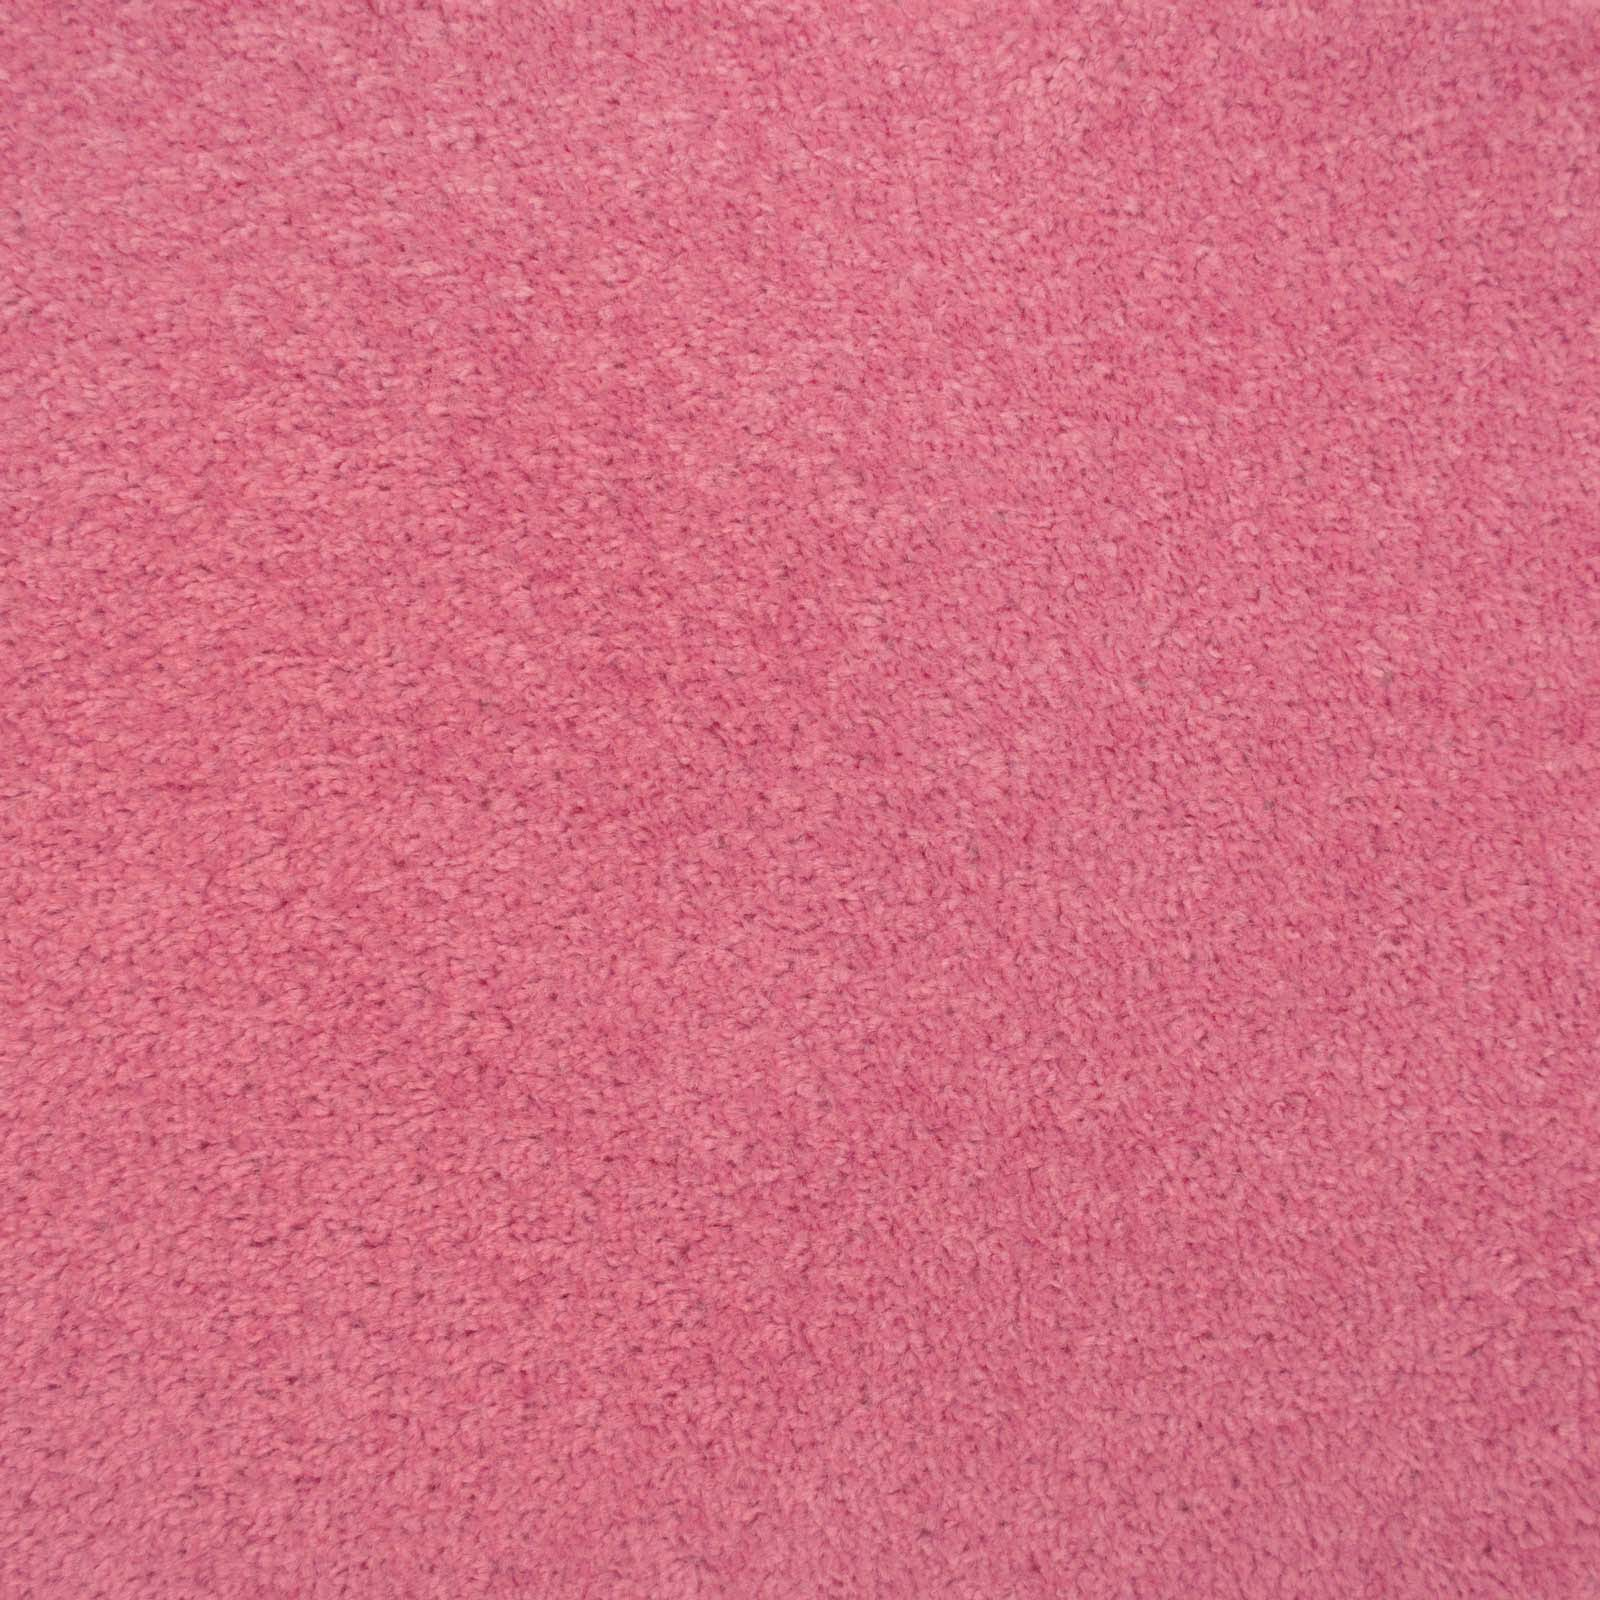 Pink Felt Back Twist Carpet - Far